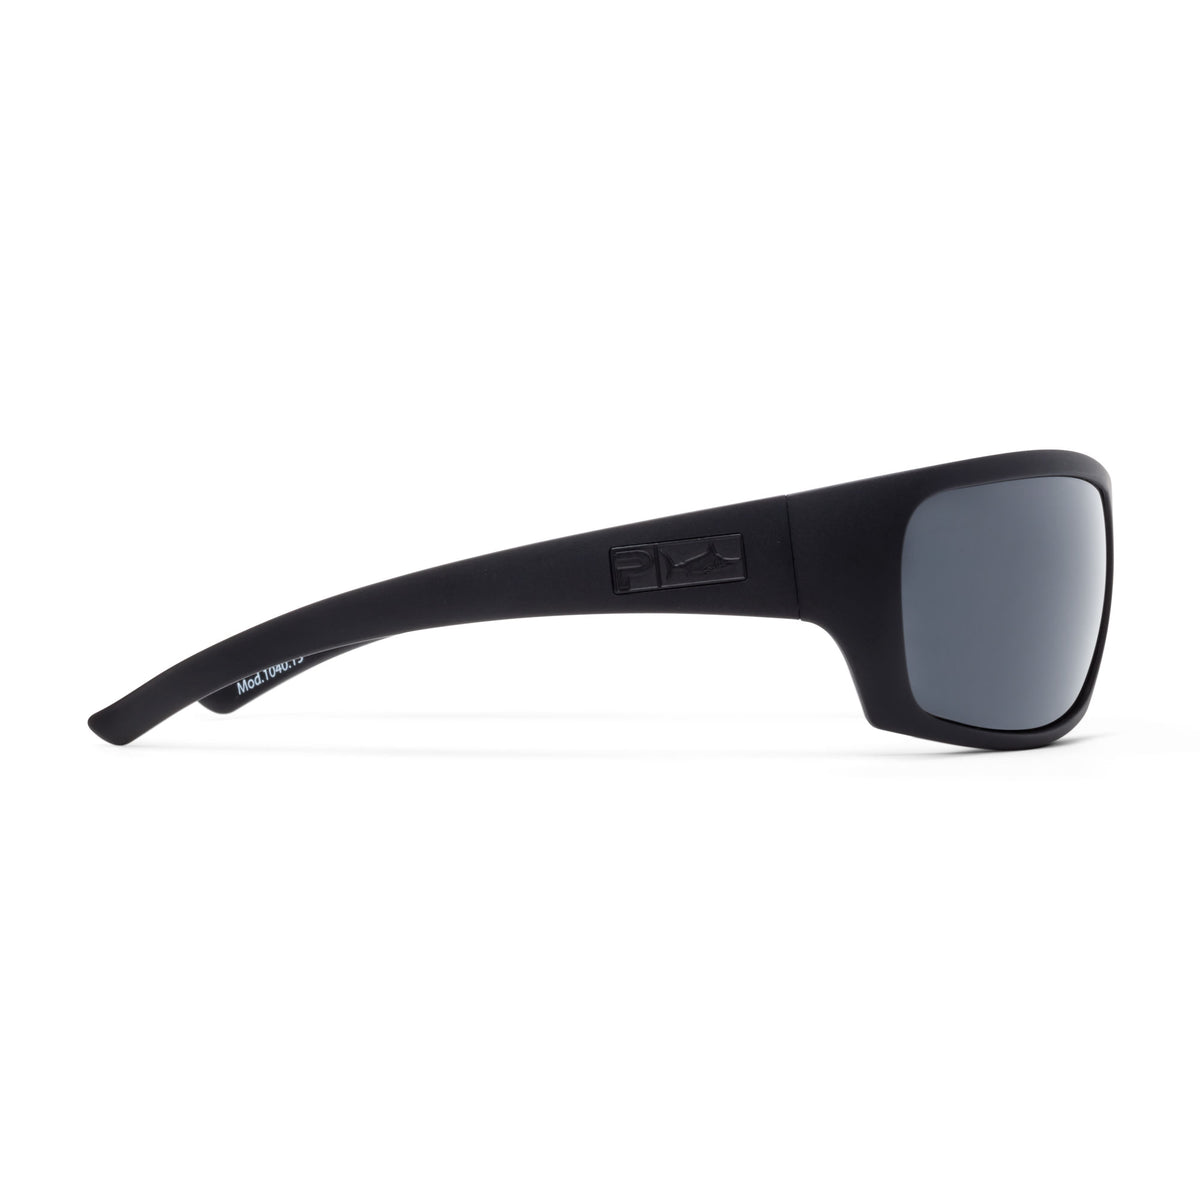 The Mack - Polarized XP-700™ Polycarbonate Lens Big Image - 3